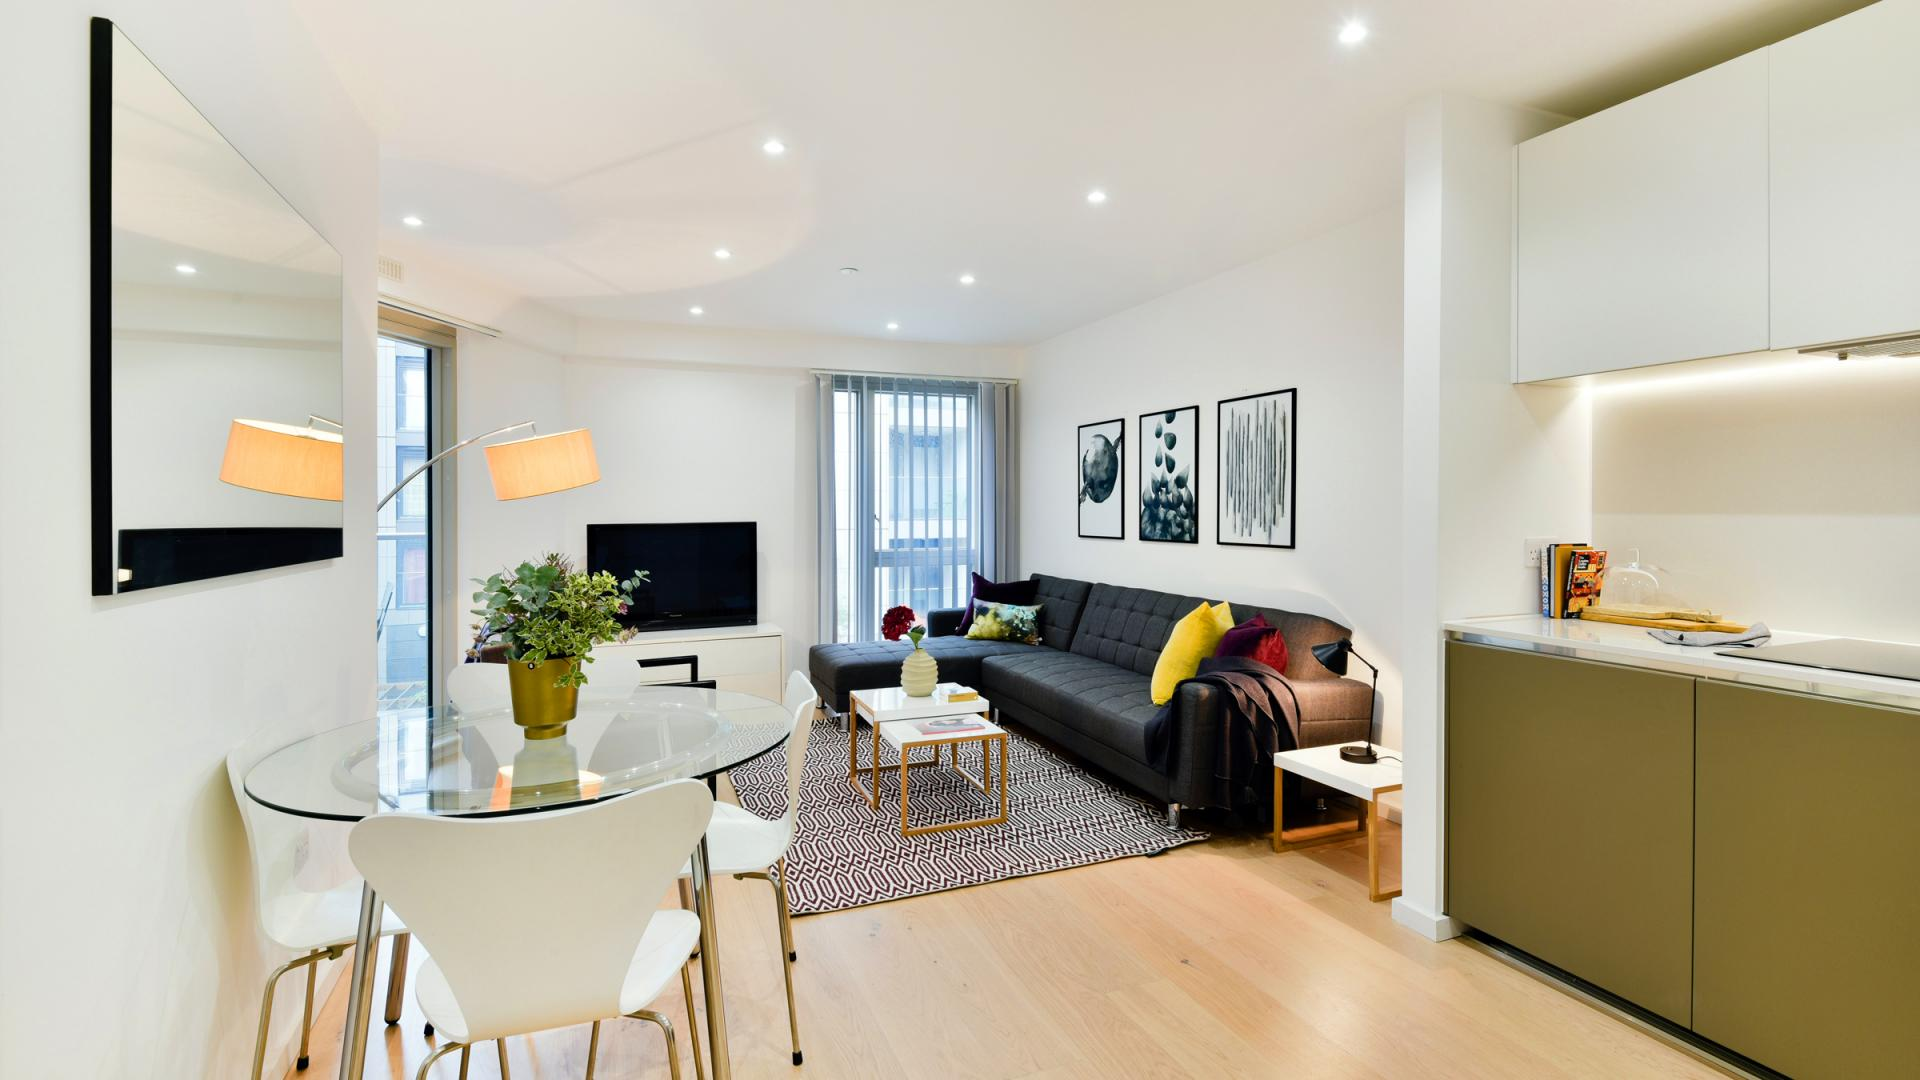 Dining area at Clapham South 1 Apartment